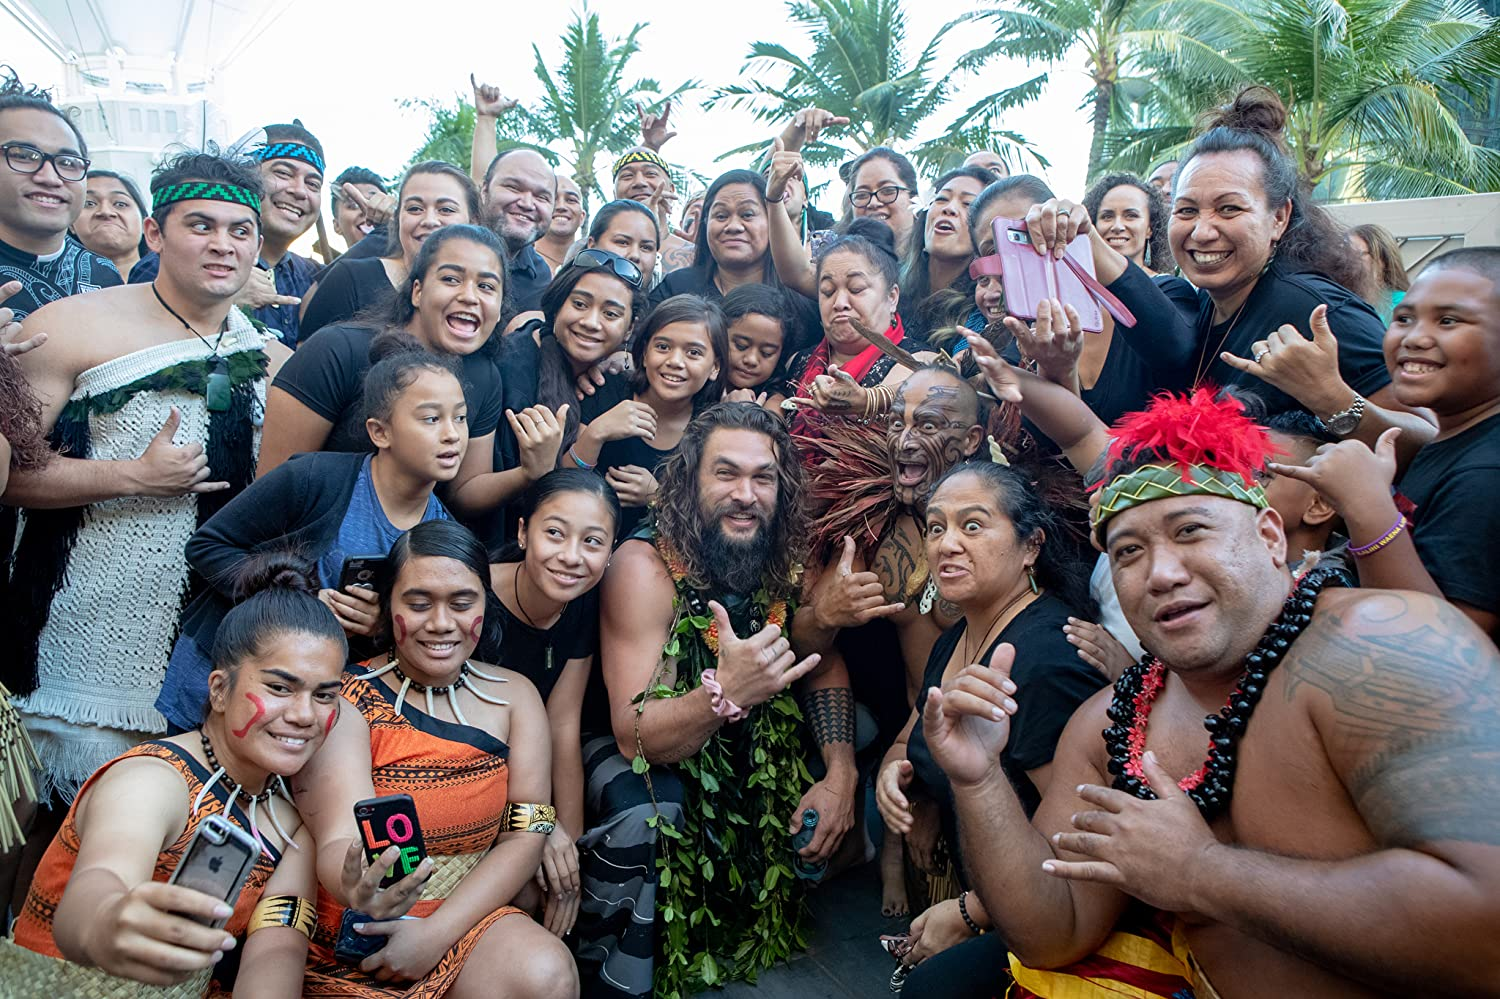 Jason Momoa and Friends. Photo by Darryl Oumi - © 2018 Darryl Oumi - Image courtesy gettyimages.com